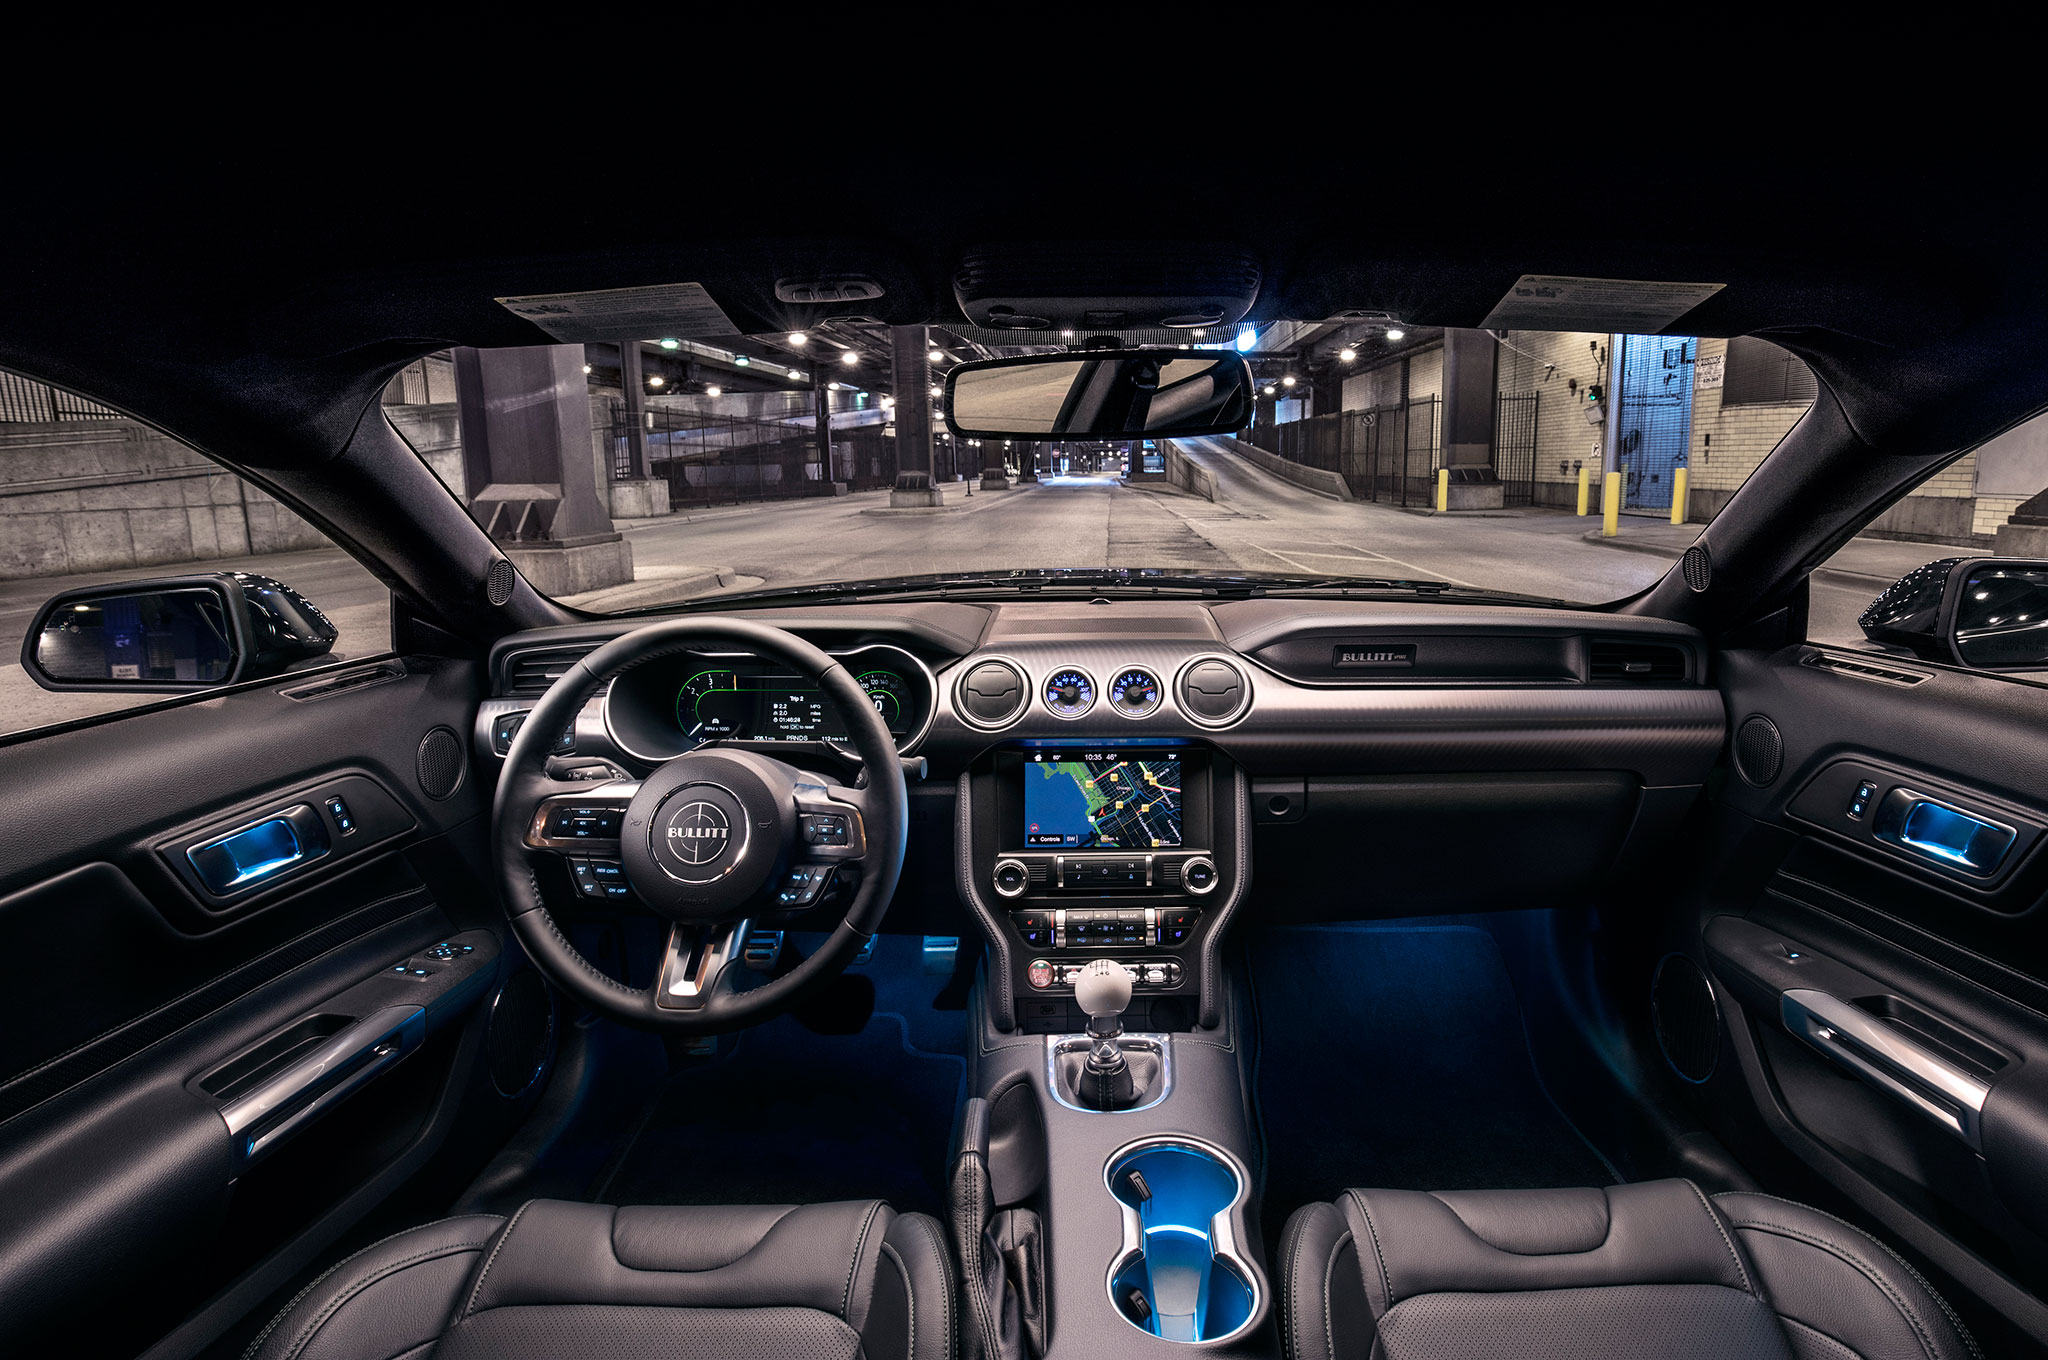 2019 ford mustang bullitt gets 47 495 price tag automobile magazine - Interior ford mustang ...